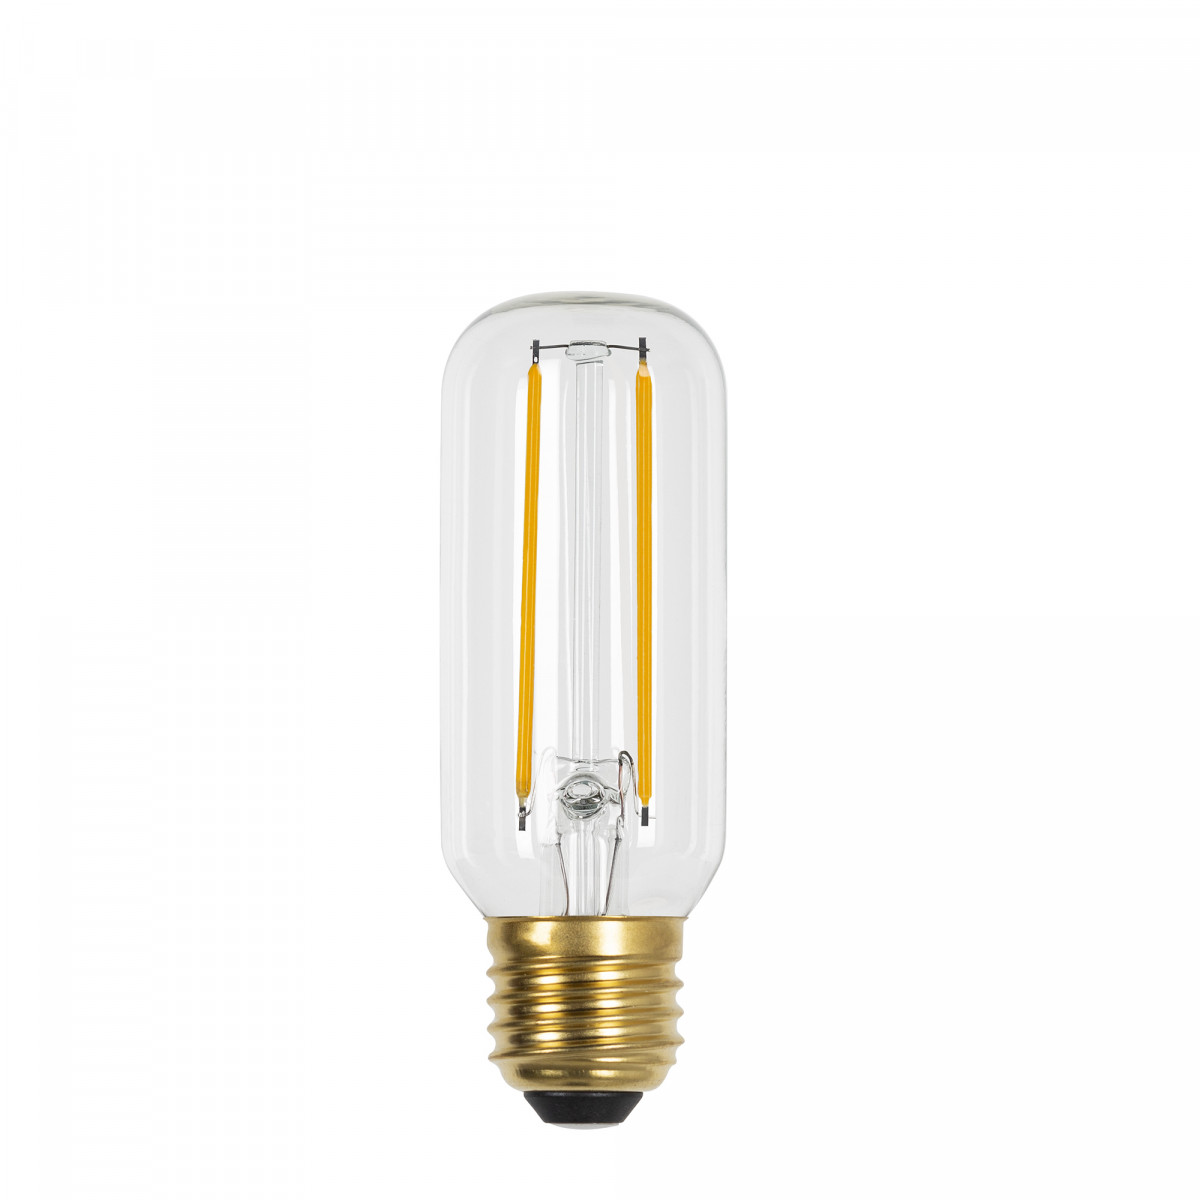 LED Lamp Classic Gold Tube 2W